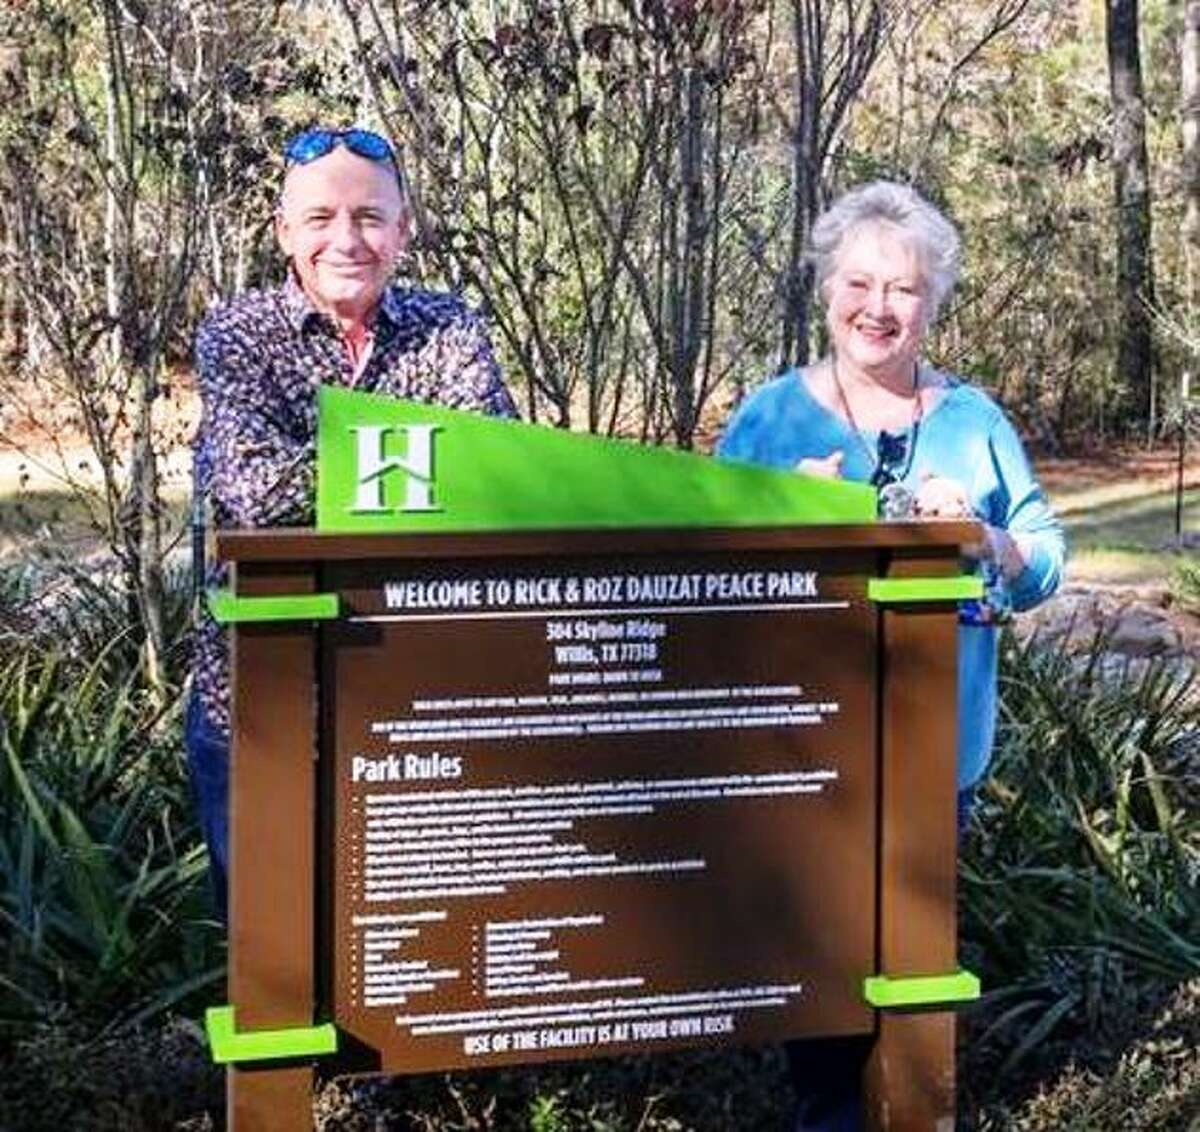 Lake Conroe Rotarian Roz Dauzat and her husband Rick, at the December 10, 2020 dedication of the new Rick and Roz Dauzat Peace Park in The Woodlands Hills subdivision.